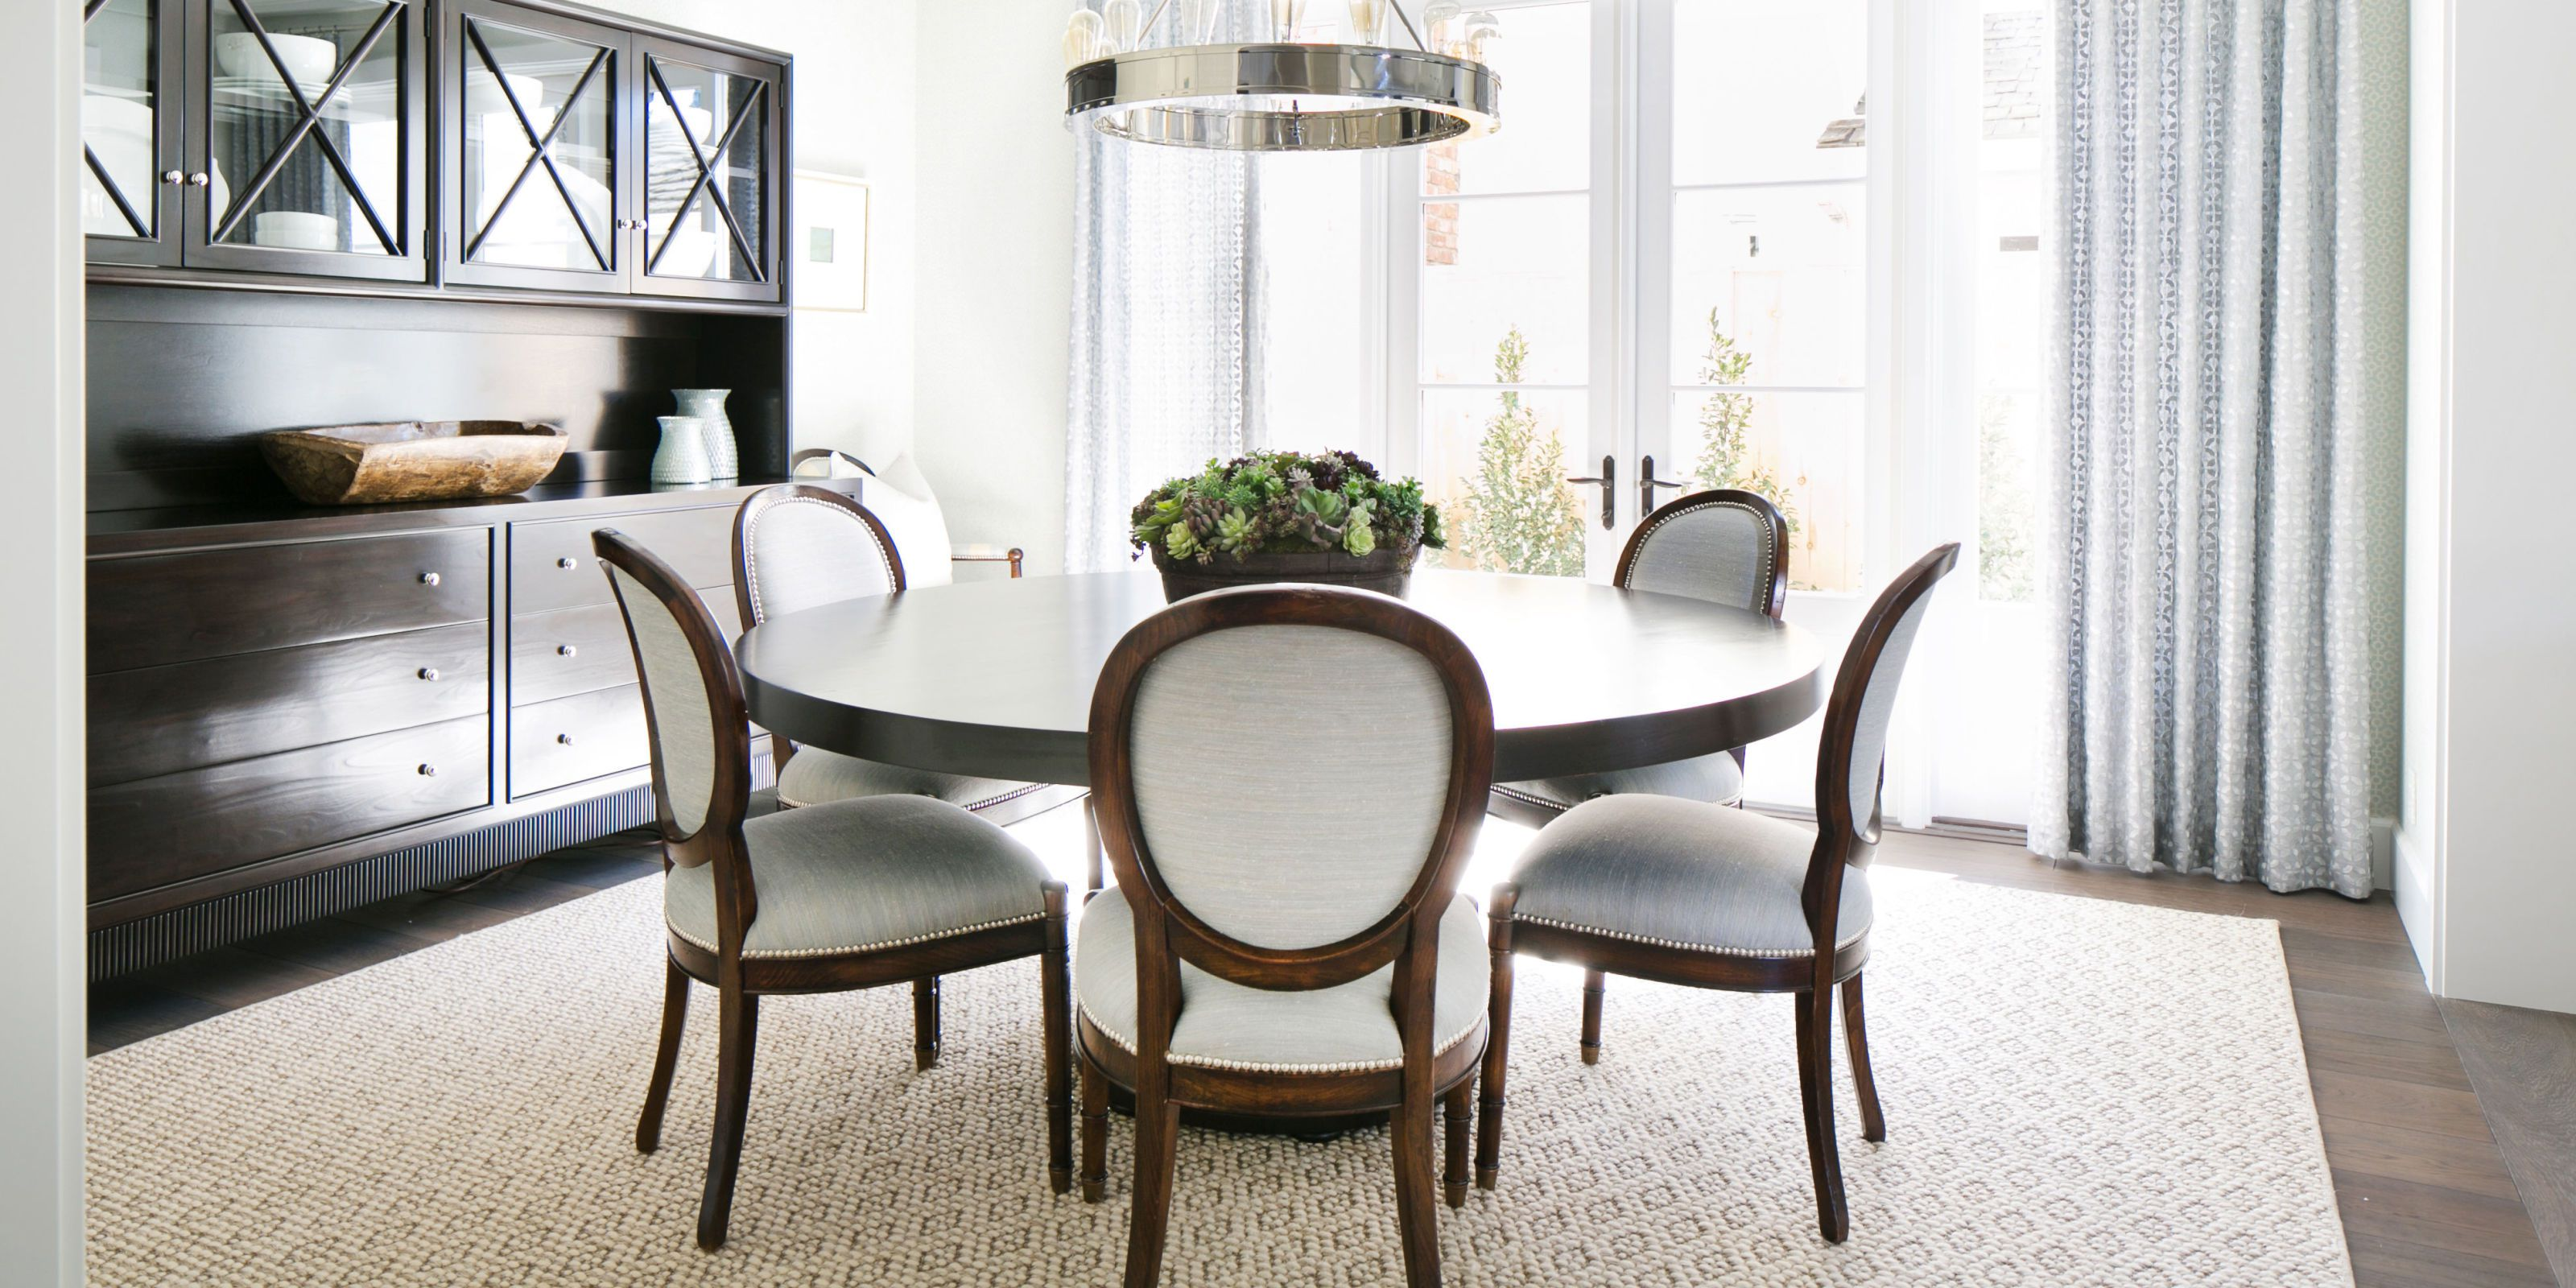 ROUND DINING ROOM TABLES, REASONS TO   CONSIDER THEM OVER OTHERS FOR HOUSES